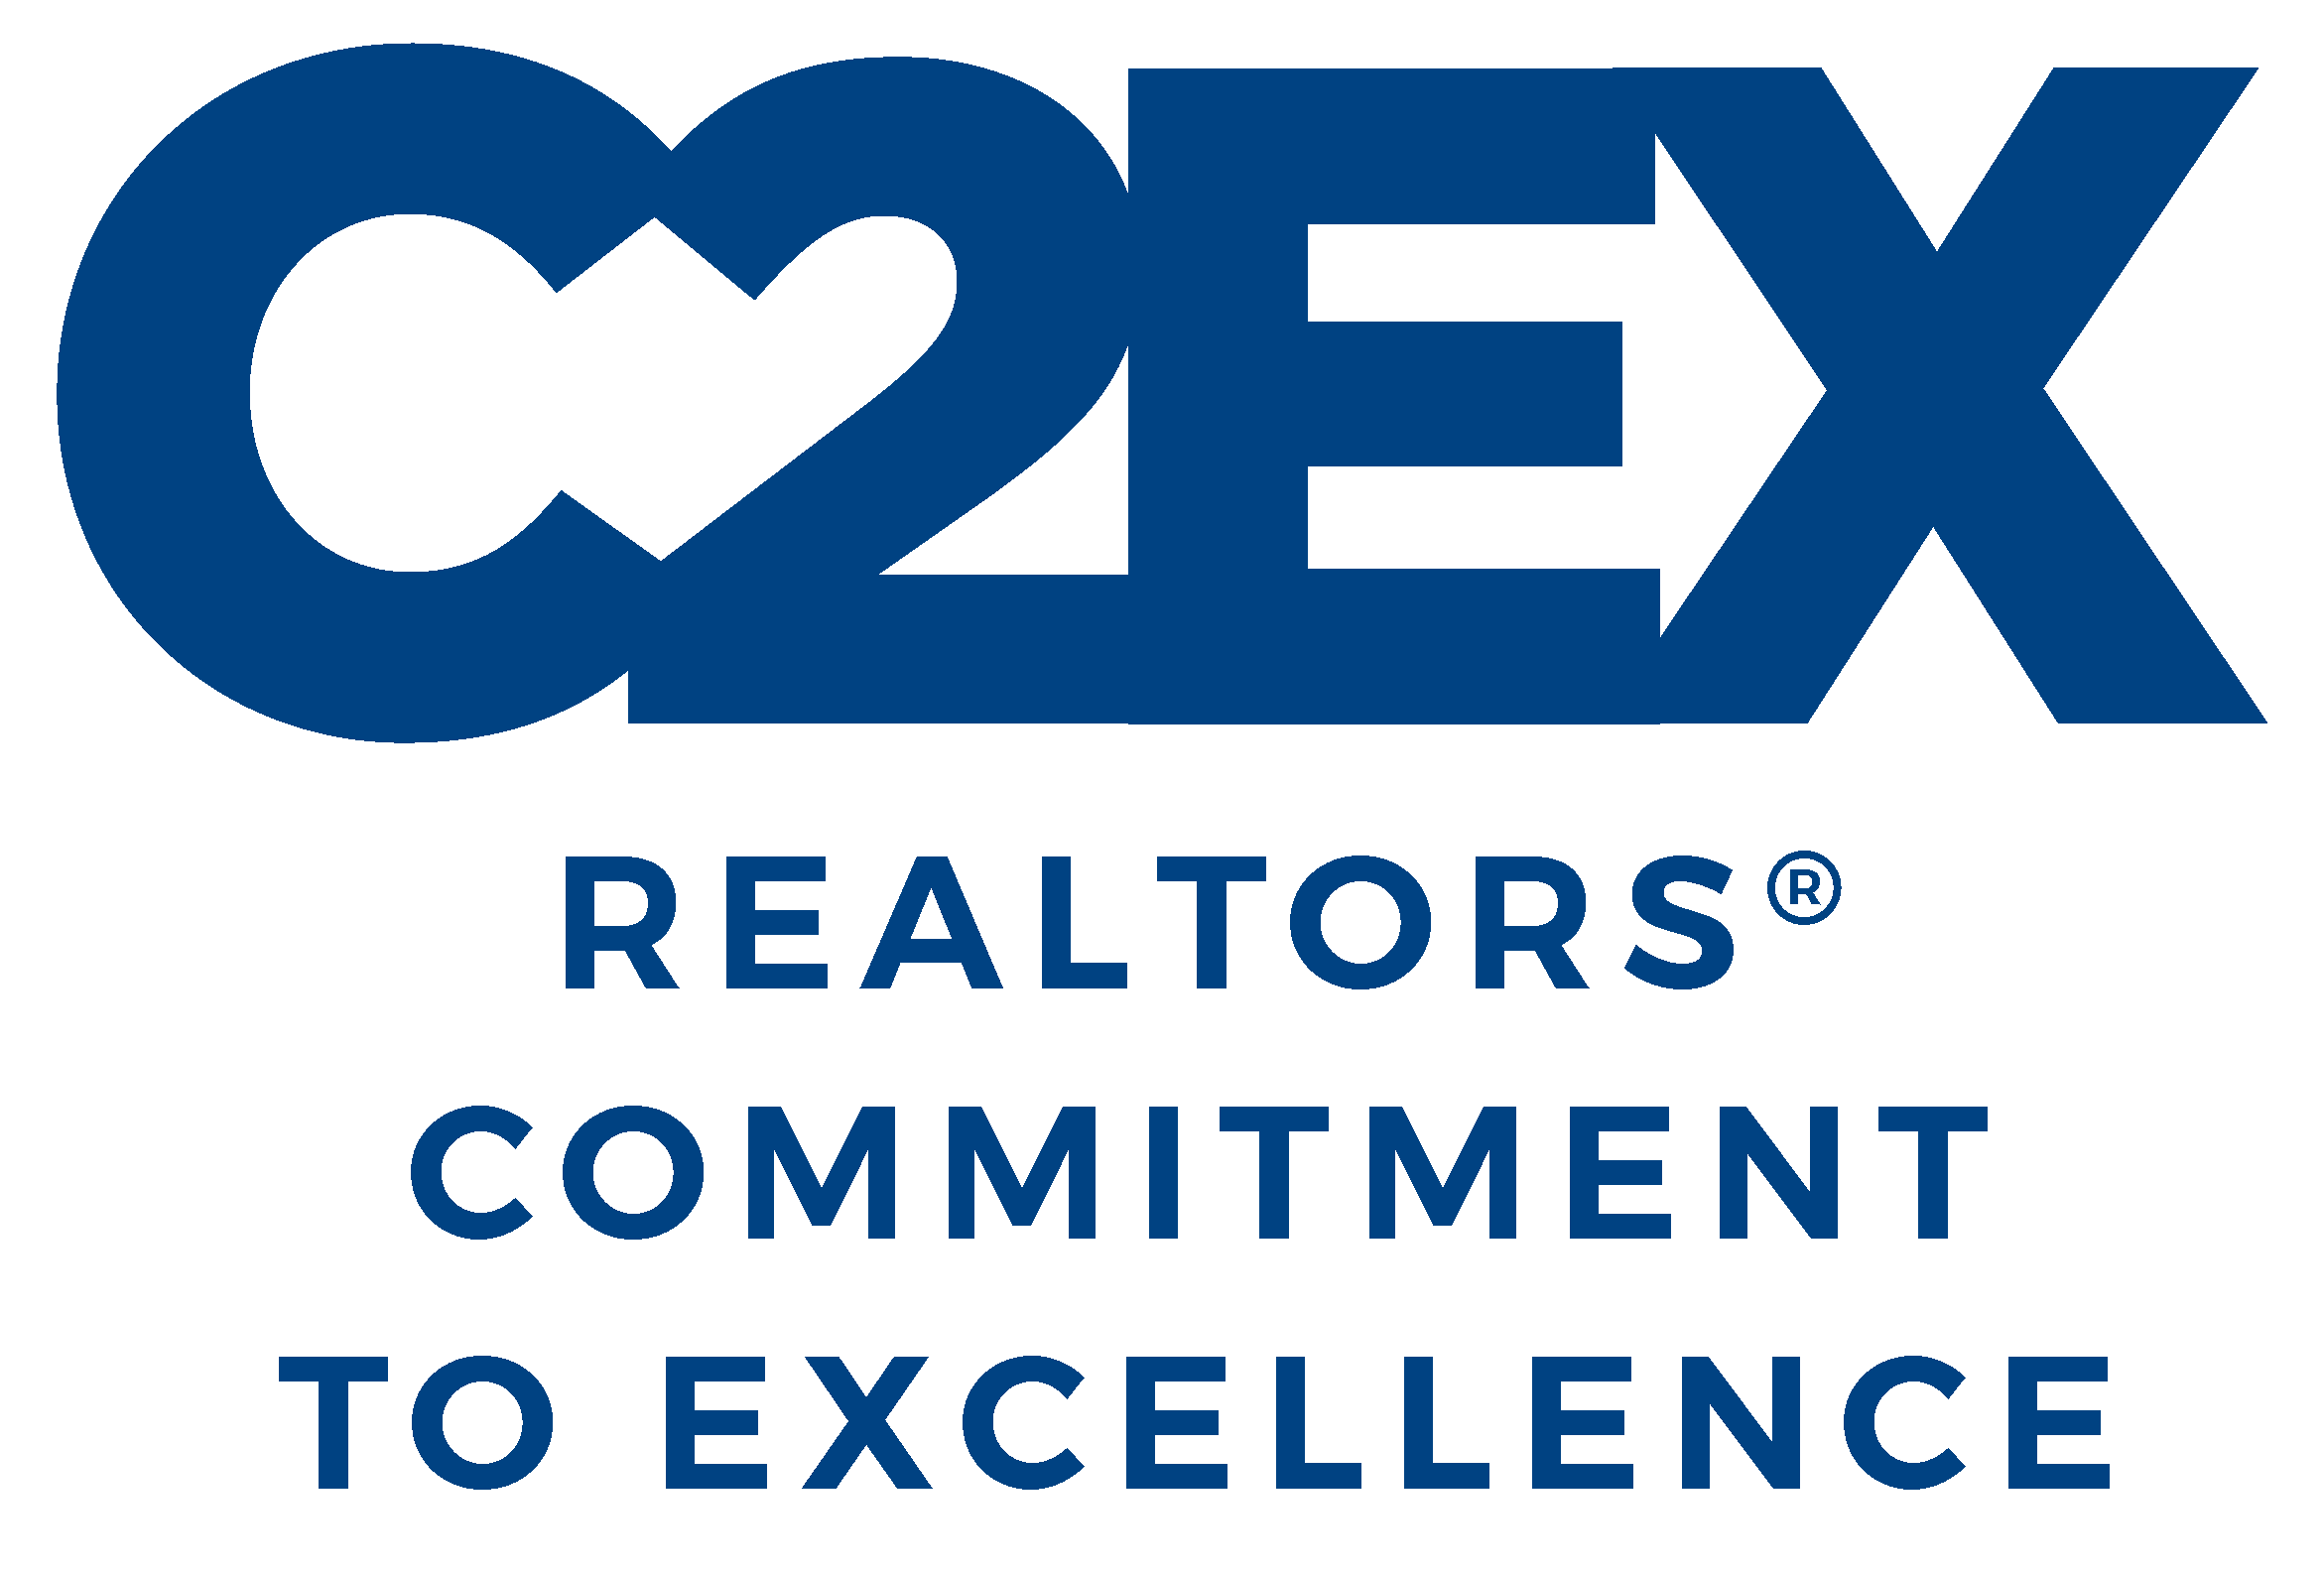 https://www.nar.realtor/sites/default/files/downloadable/NAR-1424_C2EX_New%20Lockup_isolated_10.21.20%5B1%5D.png